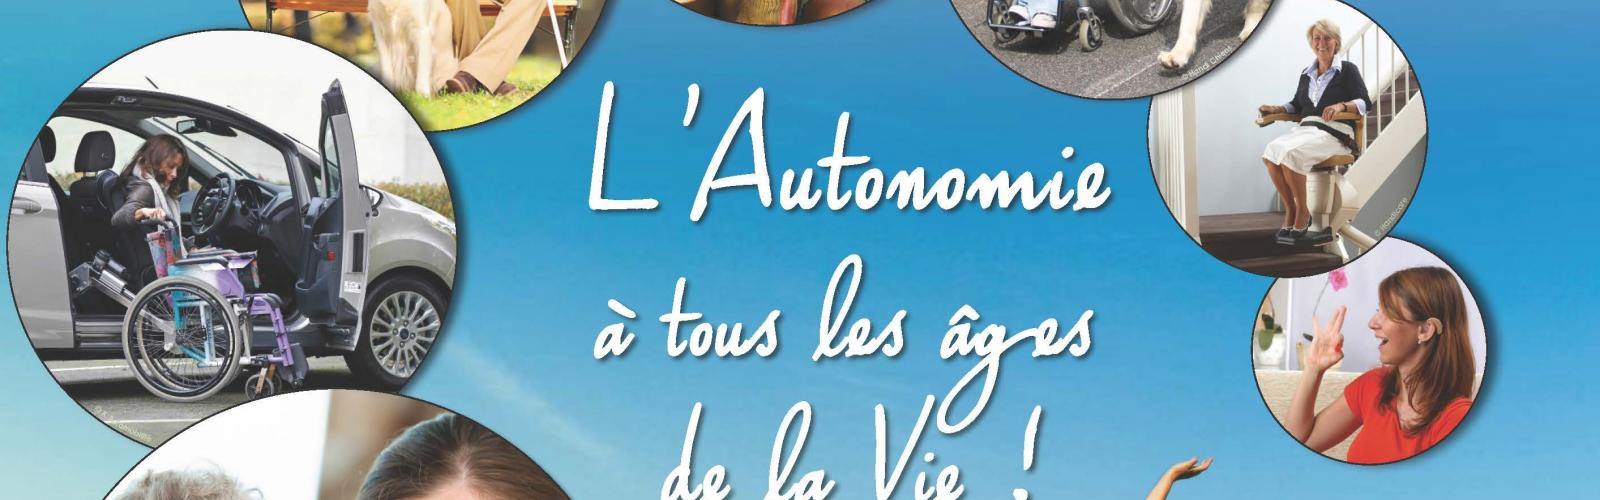 salon autonomic Lille